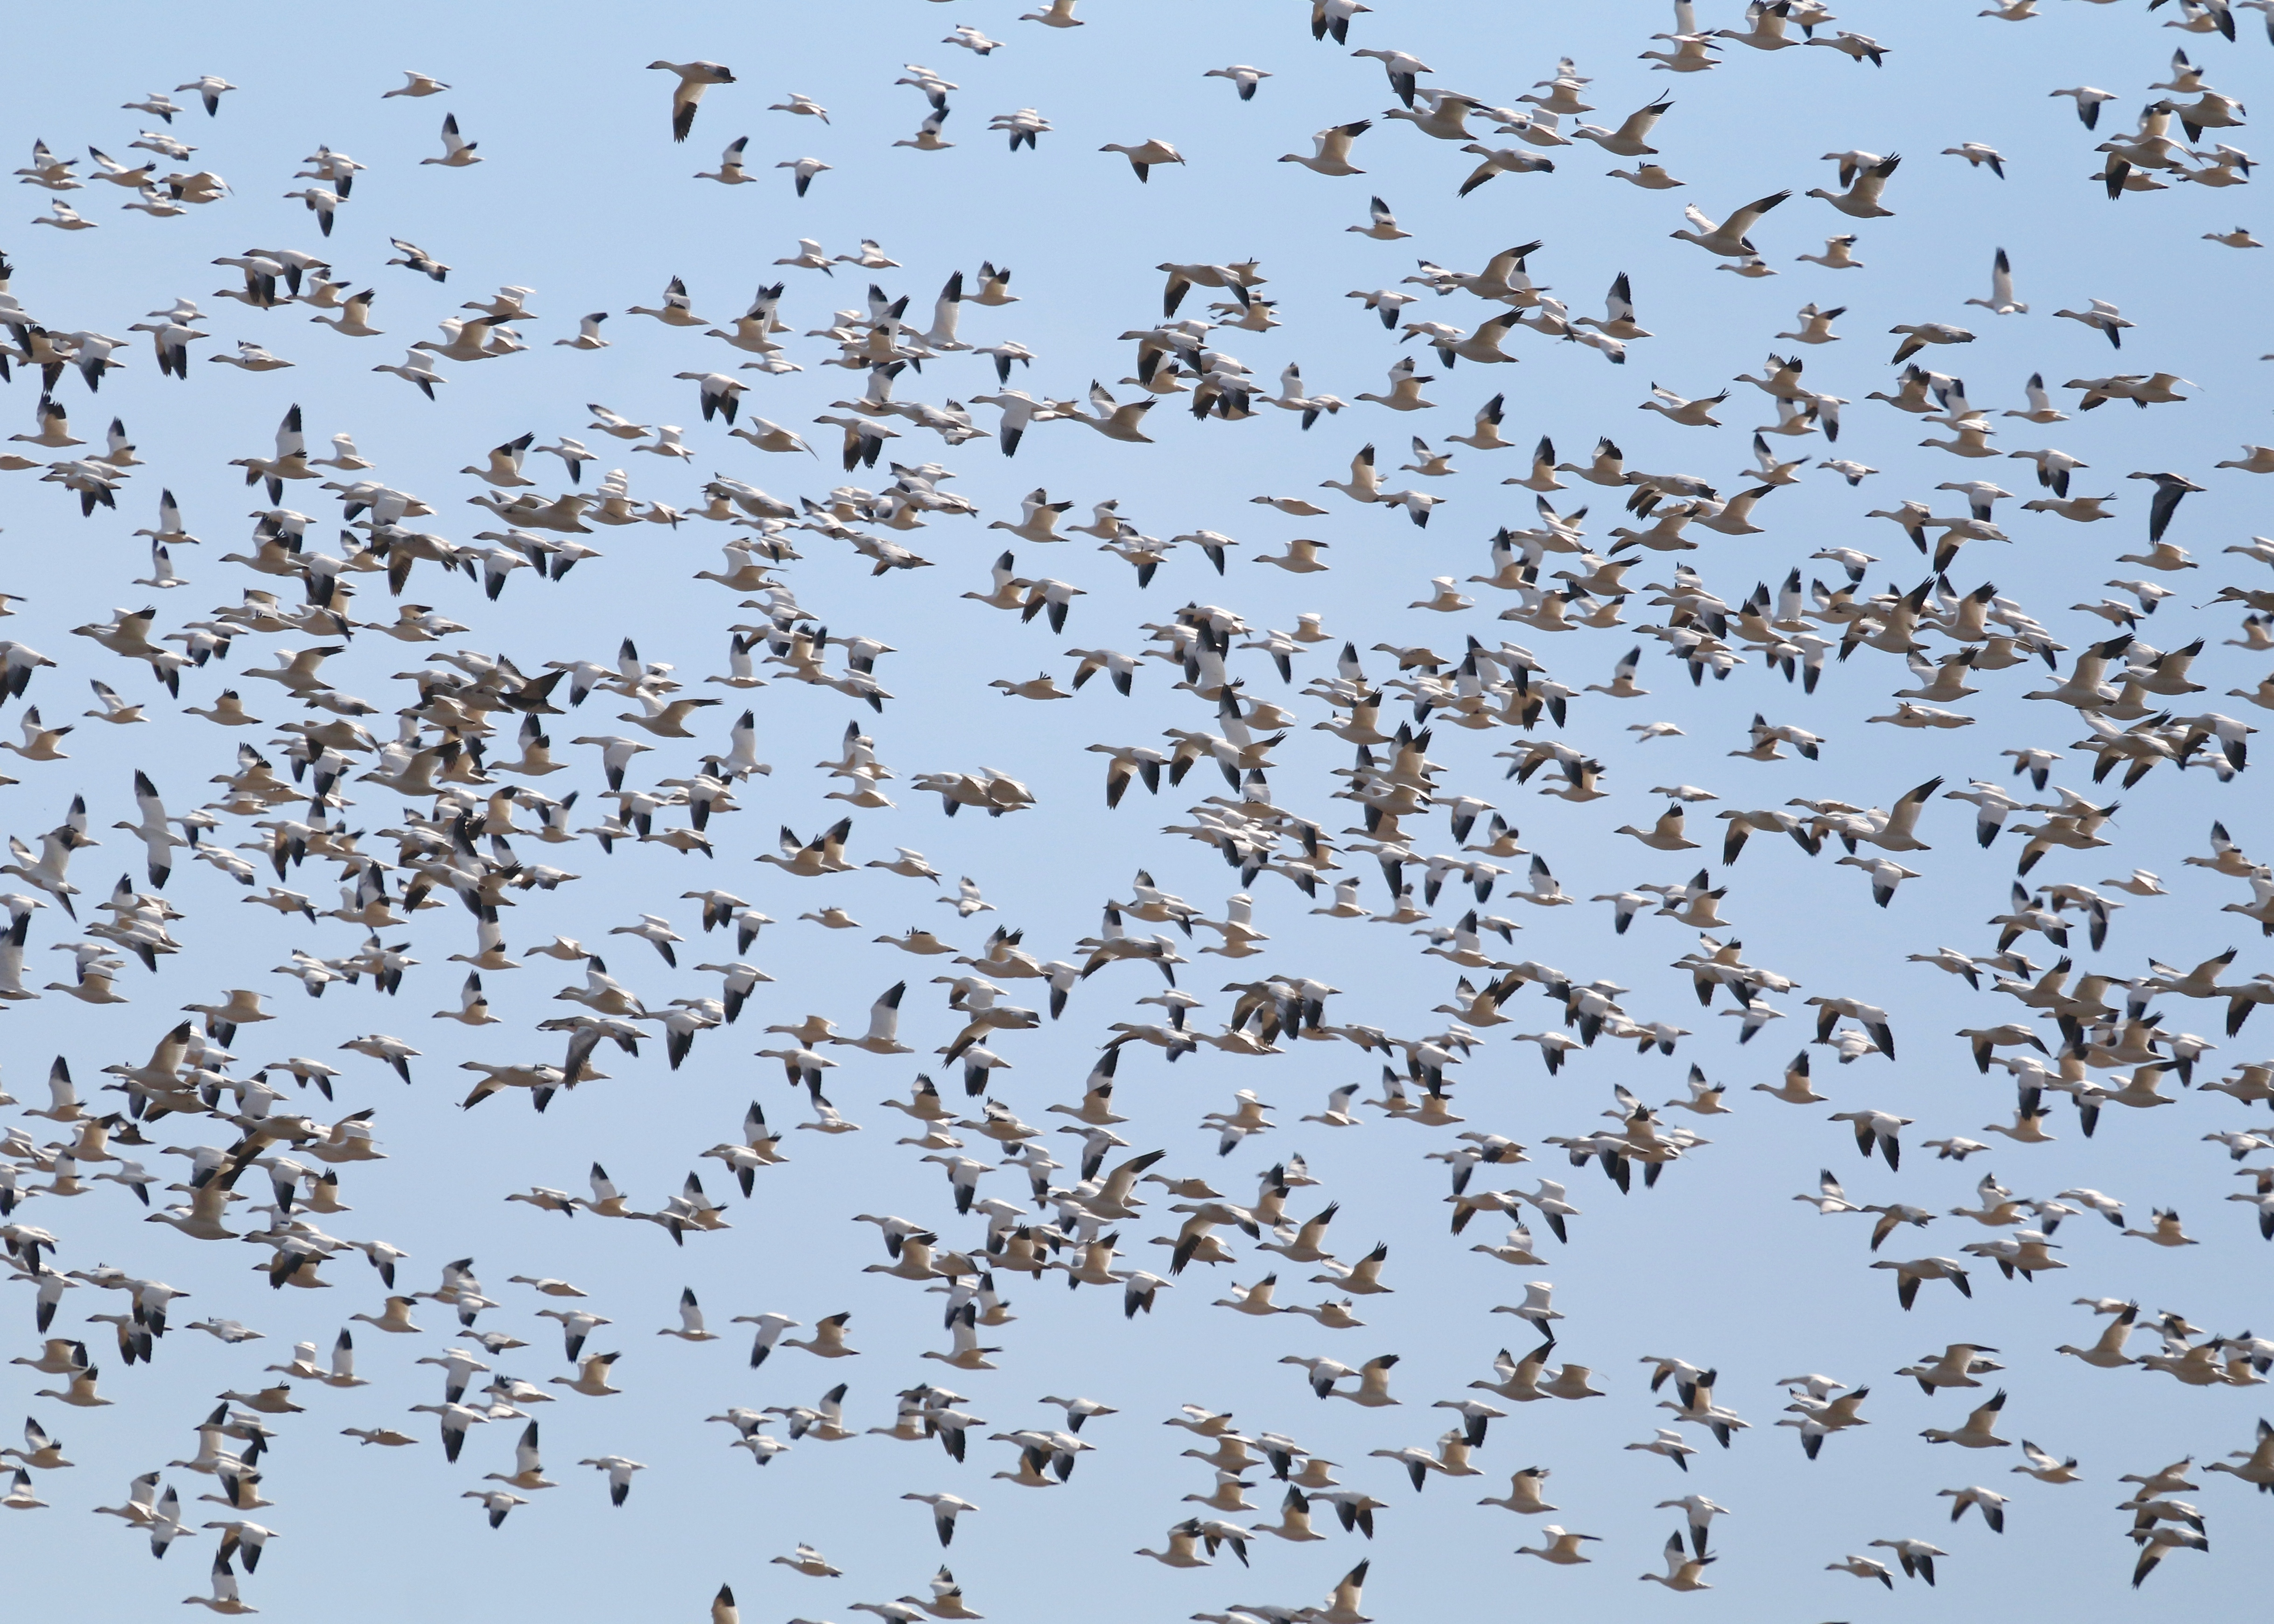 It is very enjoyable to photograph the Snow Geese, though sometimes it's hard to know what to shoot!